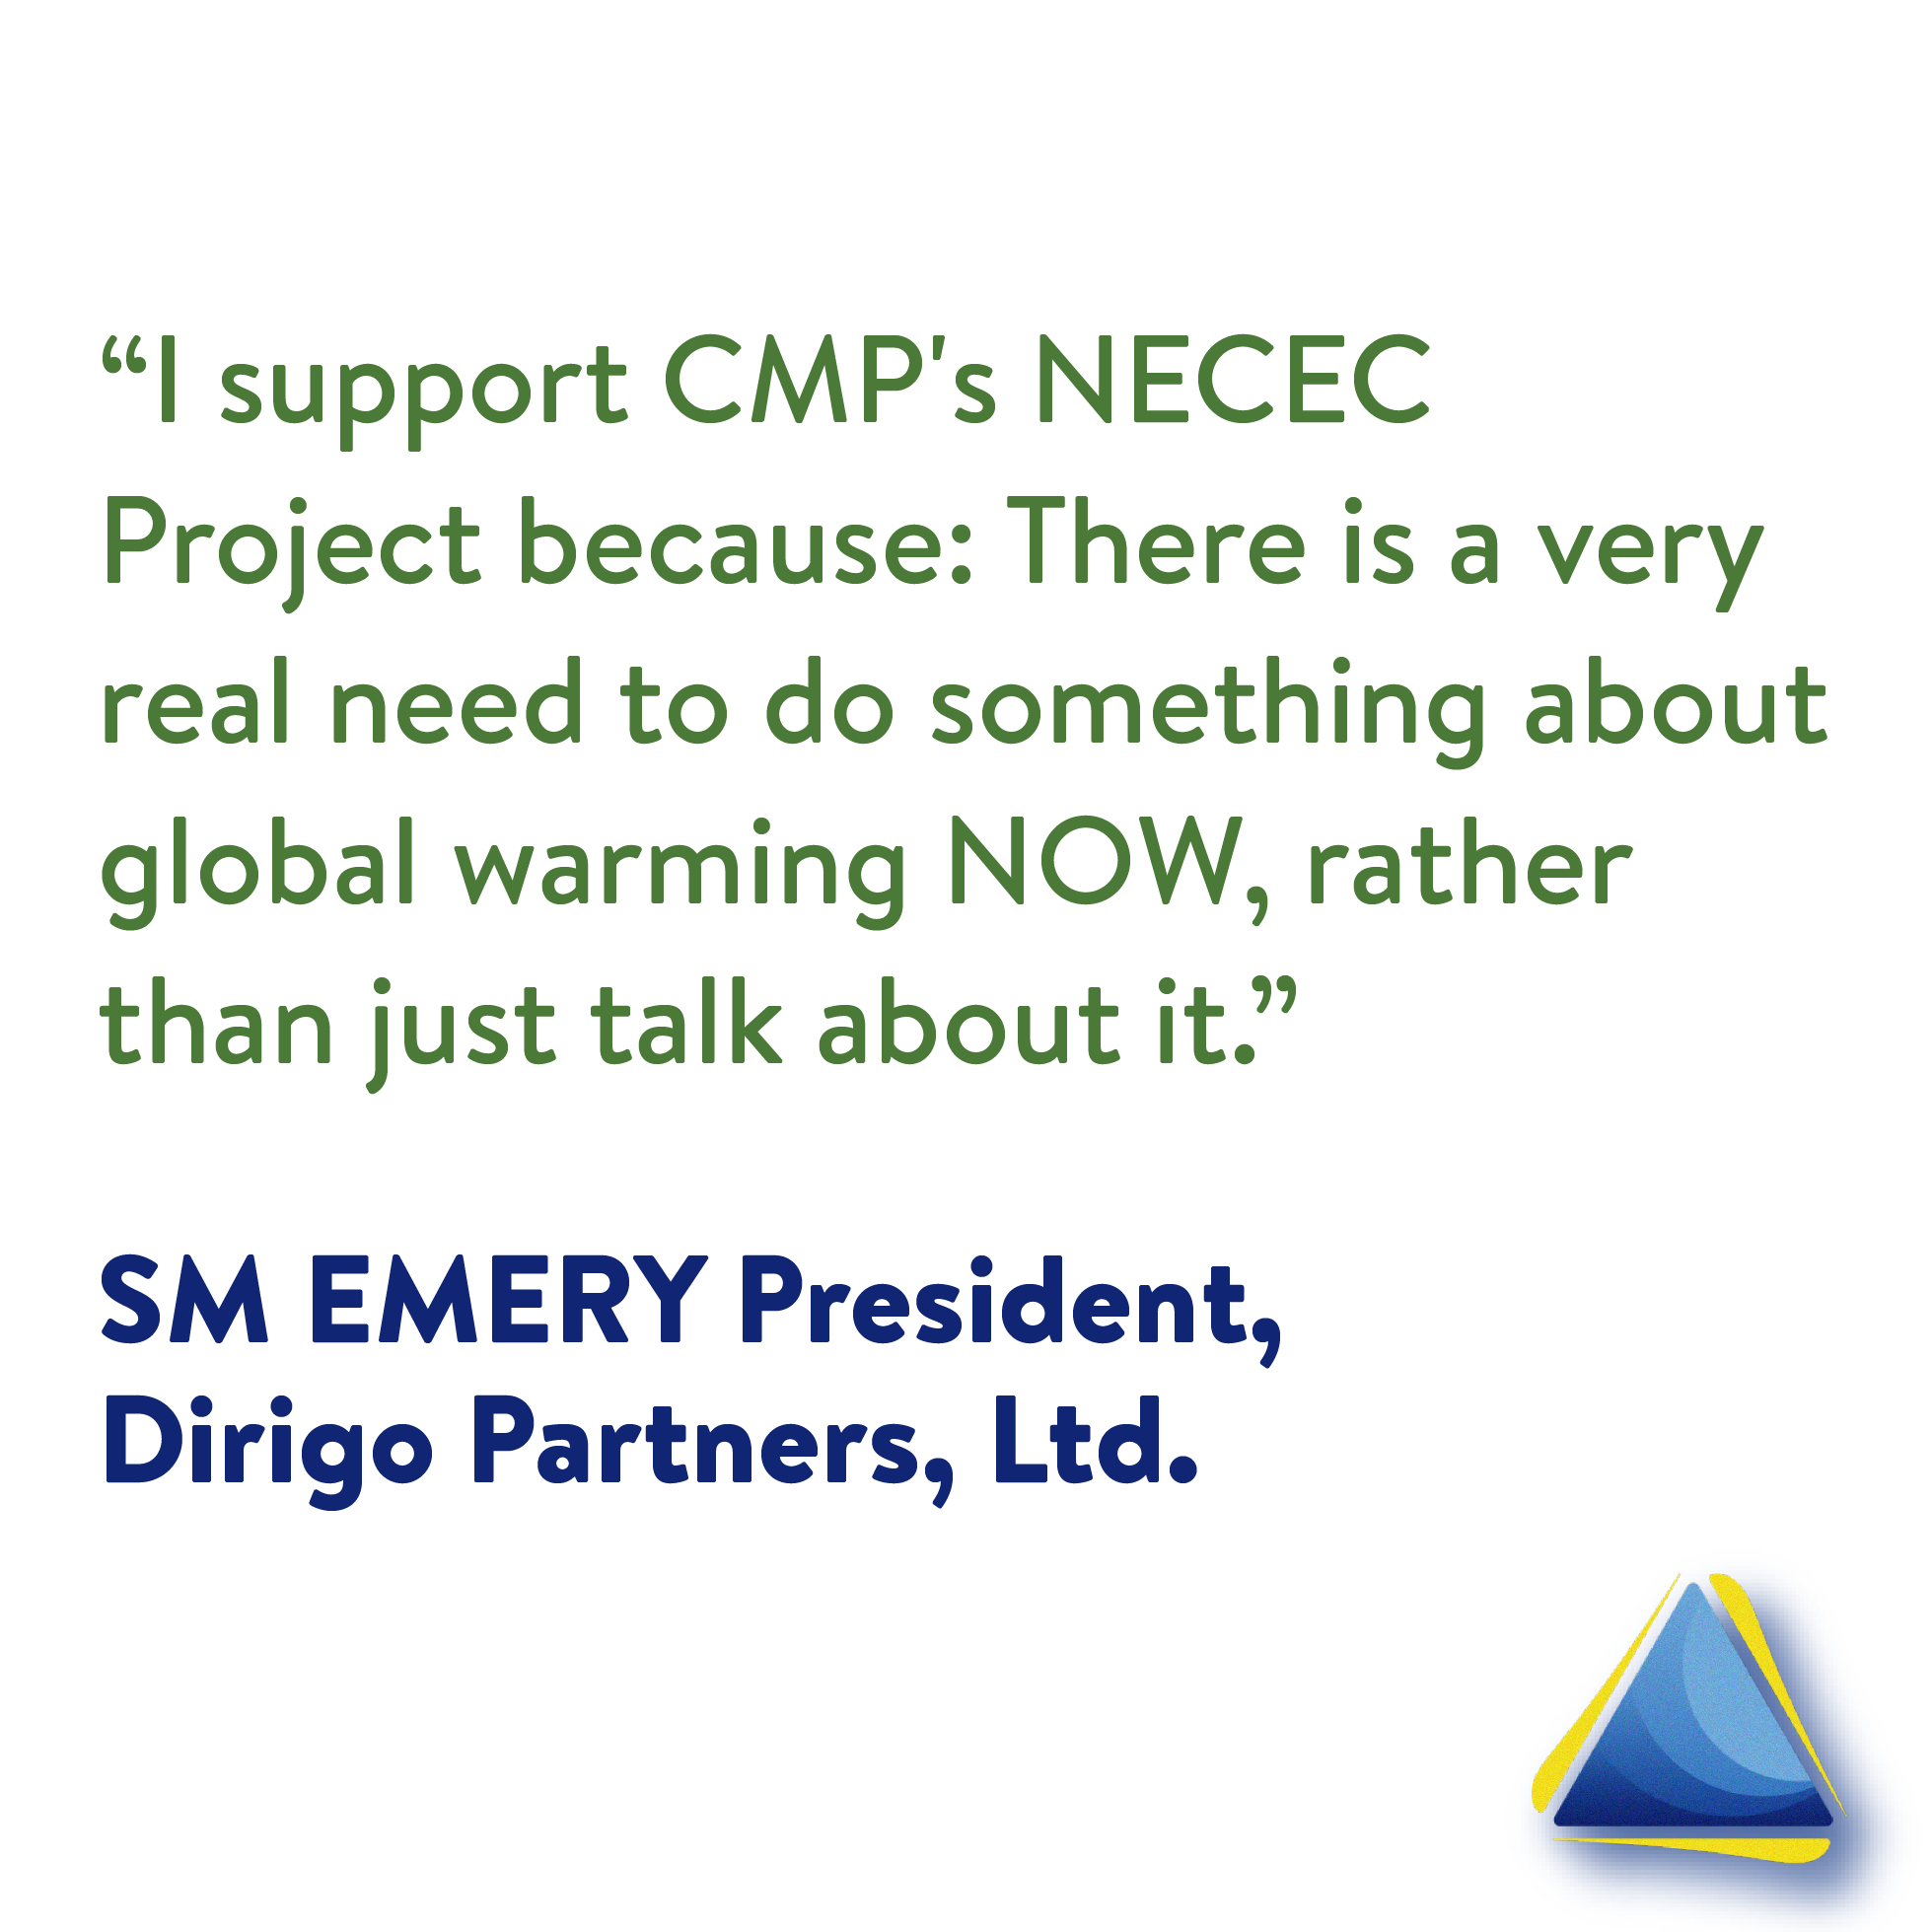 NECEC endorsements-28.png